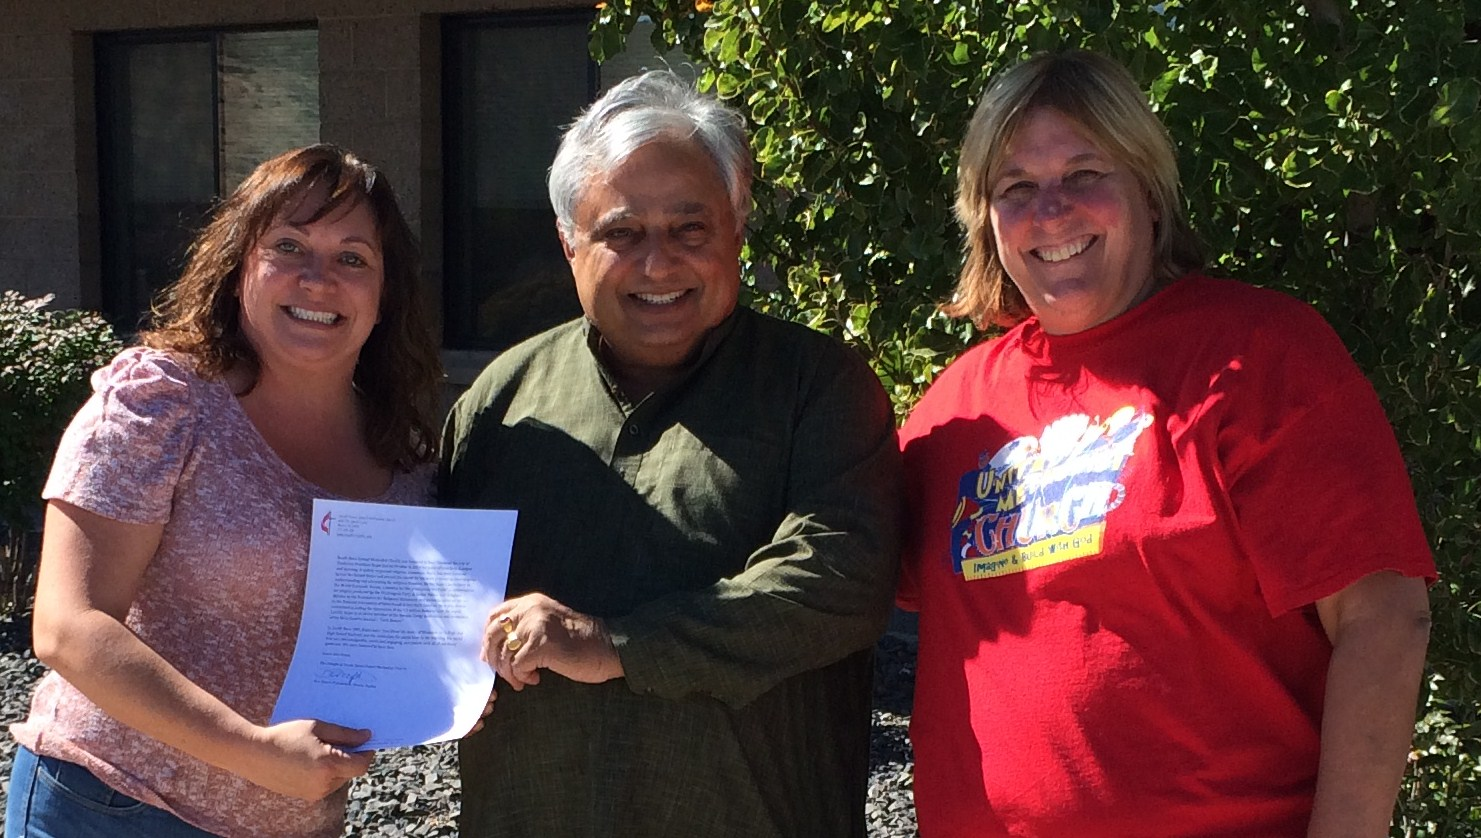 Rajan Zed receiving a testimonial at South Reno United Methodist Church. From left to right are—Dawn Pidlypchak, Rajan Zed and Pastor Becky Stockdale.